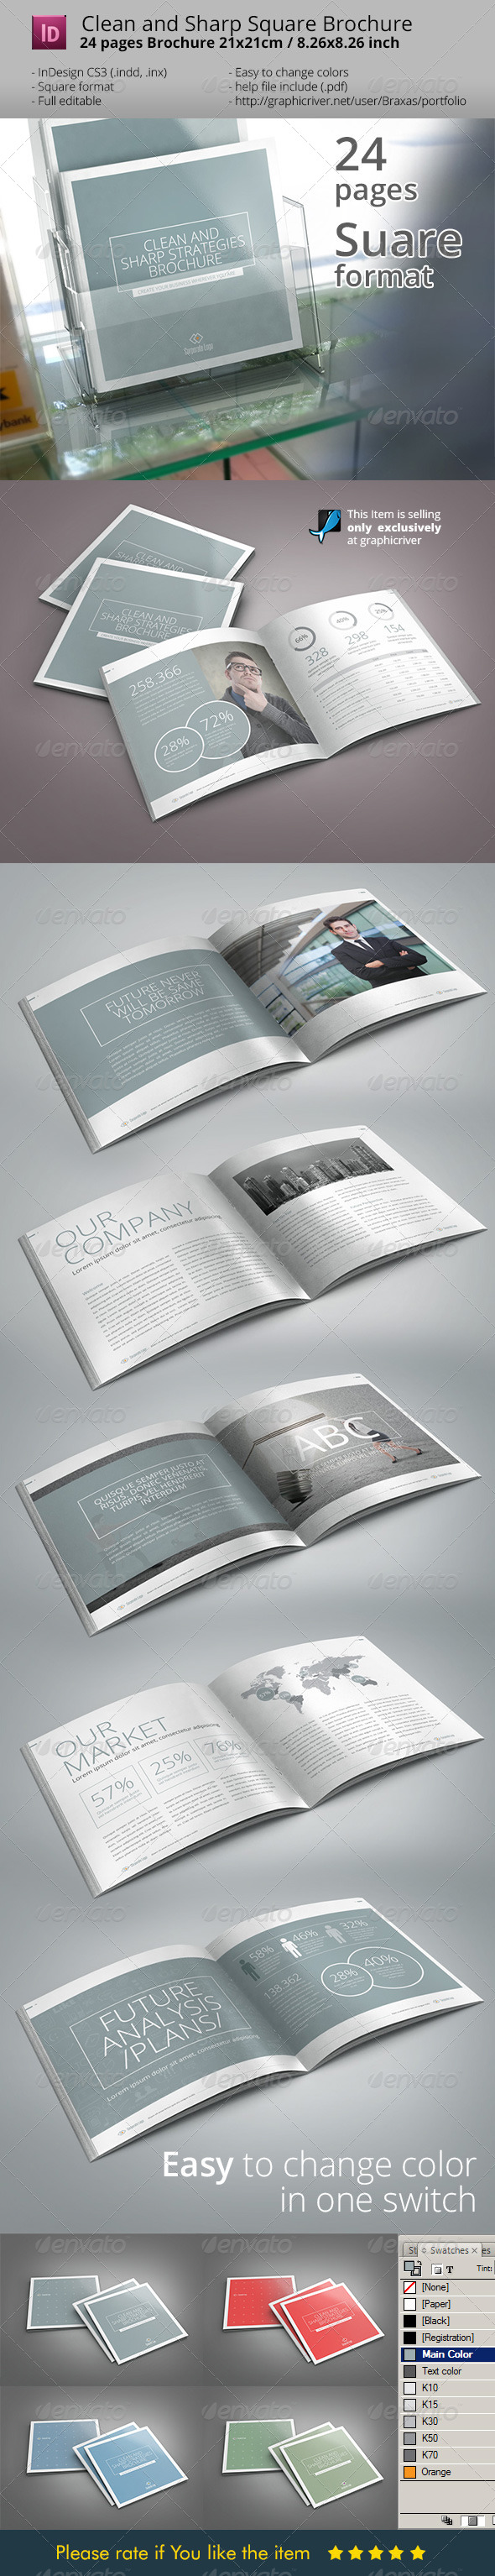 GraphicRiver Sharp and Clean Square Indesign Brochure Template 7063884